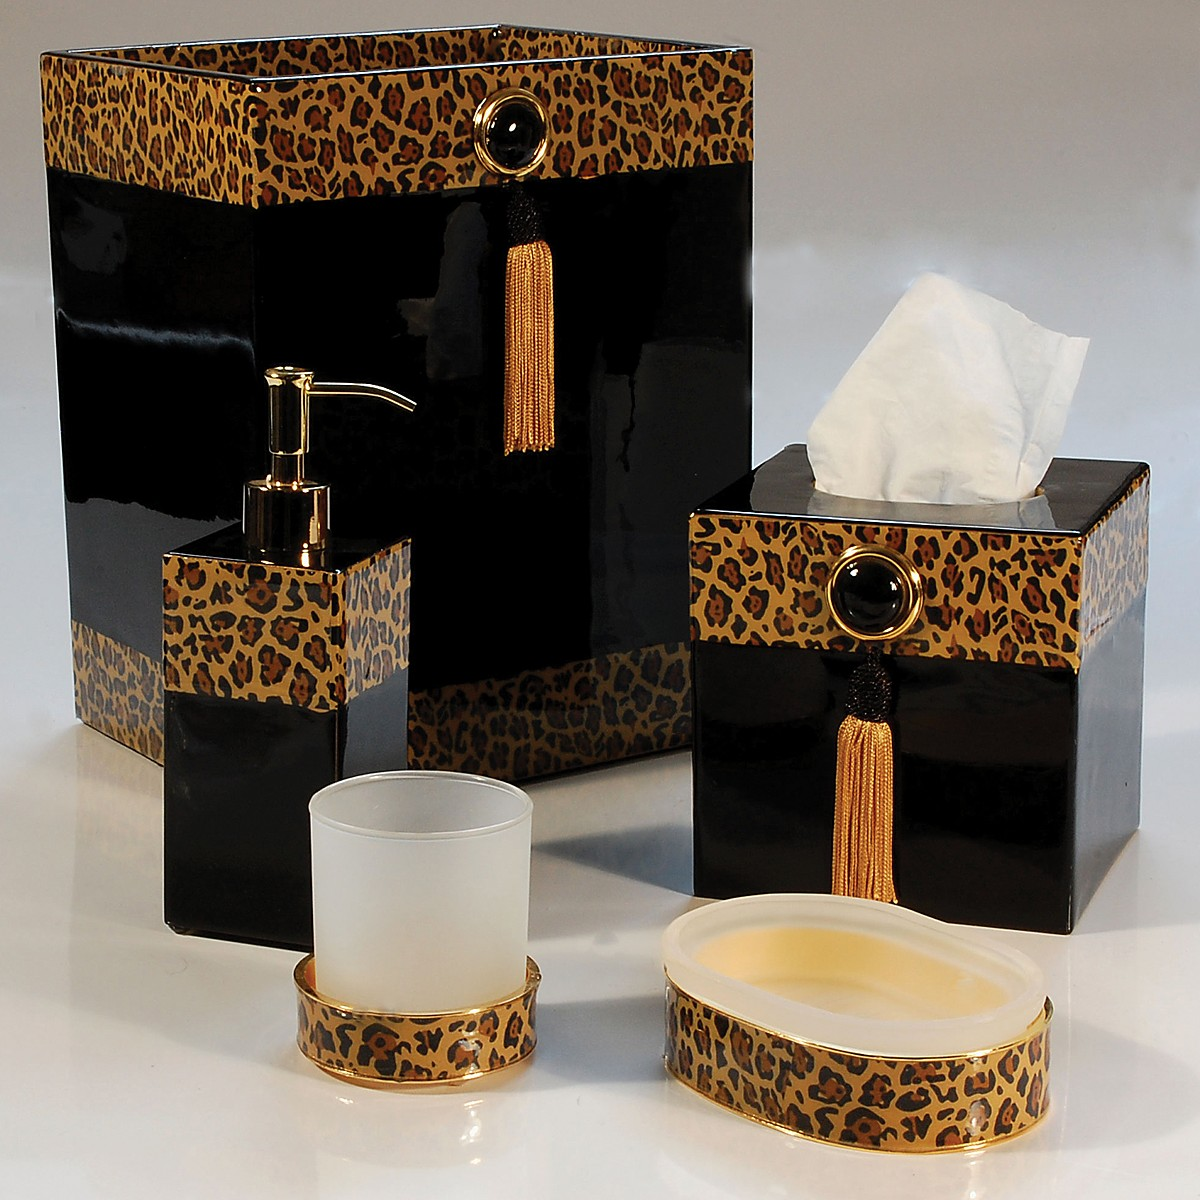 Exceptional Leopard Decor Bathroom Leopard Print ...